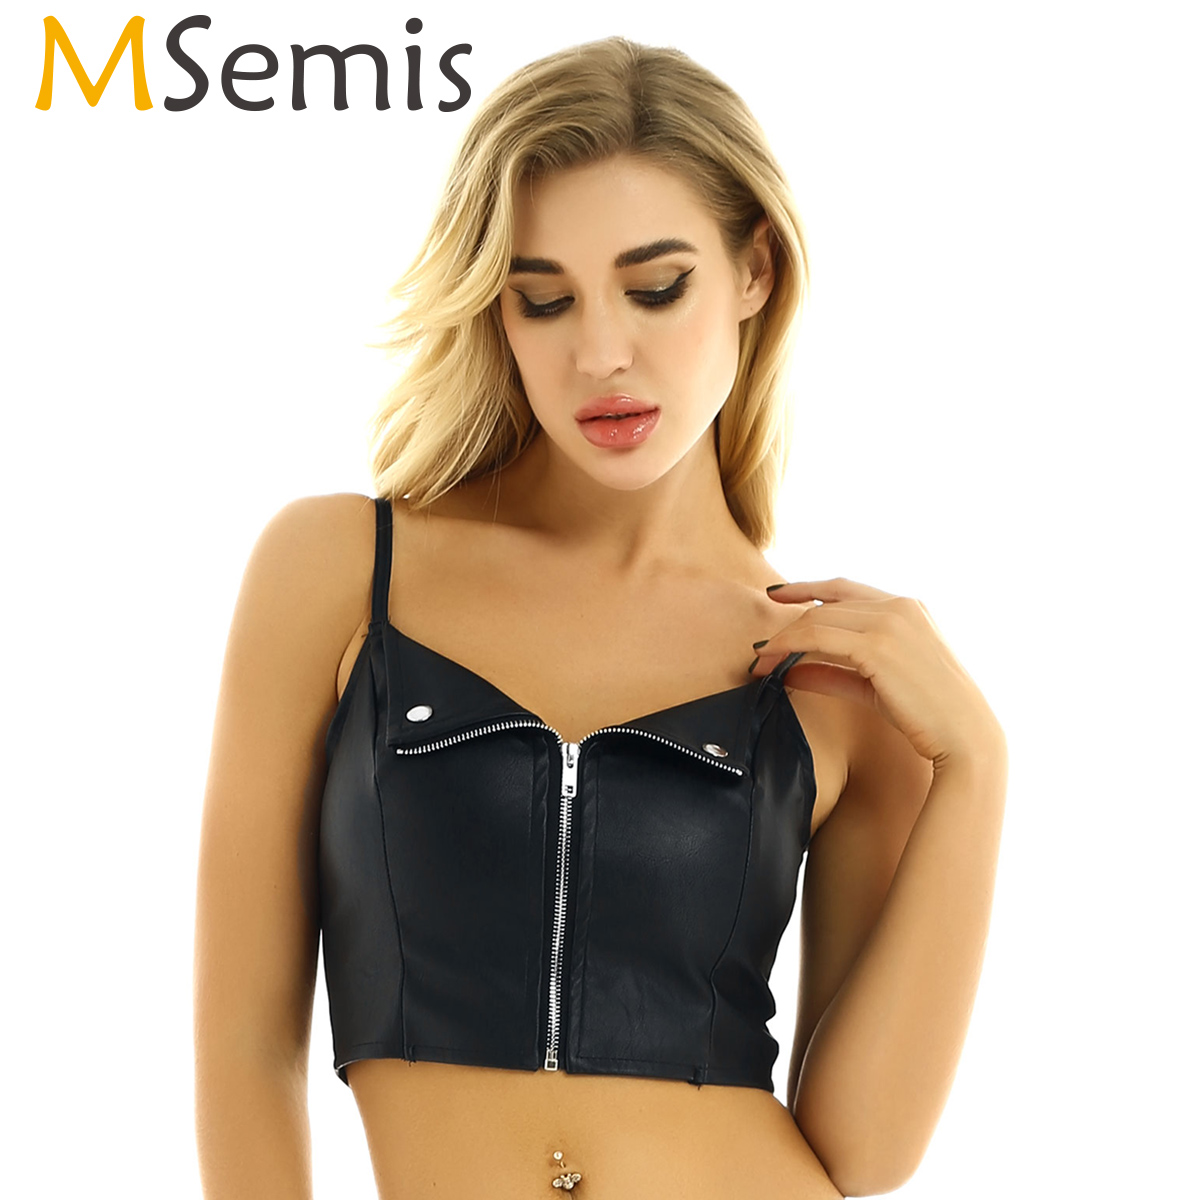 MSemis Women Pole Dance wear Crop Top PU Leather Strip Tease Front Zipper <font><b>Sexy</b></font> Tank Top <font><b>Festival</b></font> Raves Clothes Clubwear Costume image